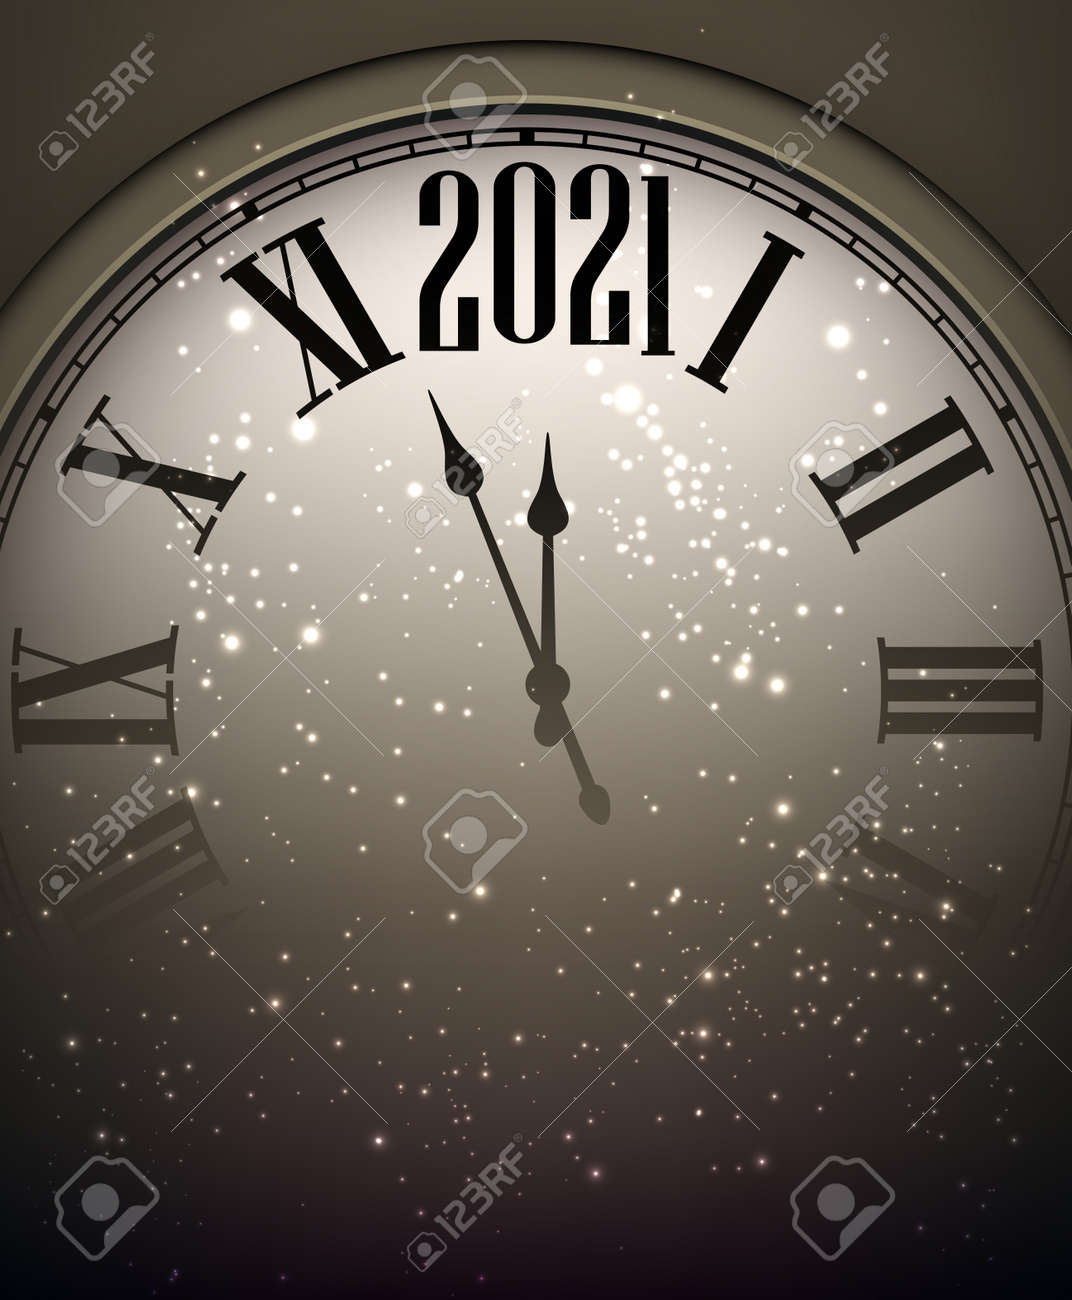 Creative clock showing 2021 year with shiny lights on dark background. Vector holiday illustration. - 157294735